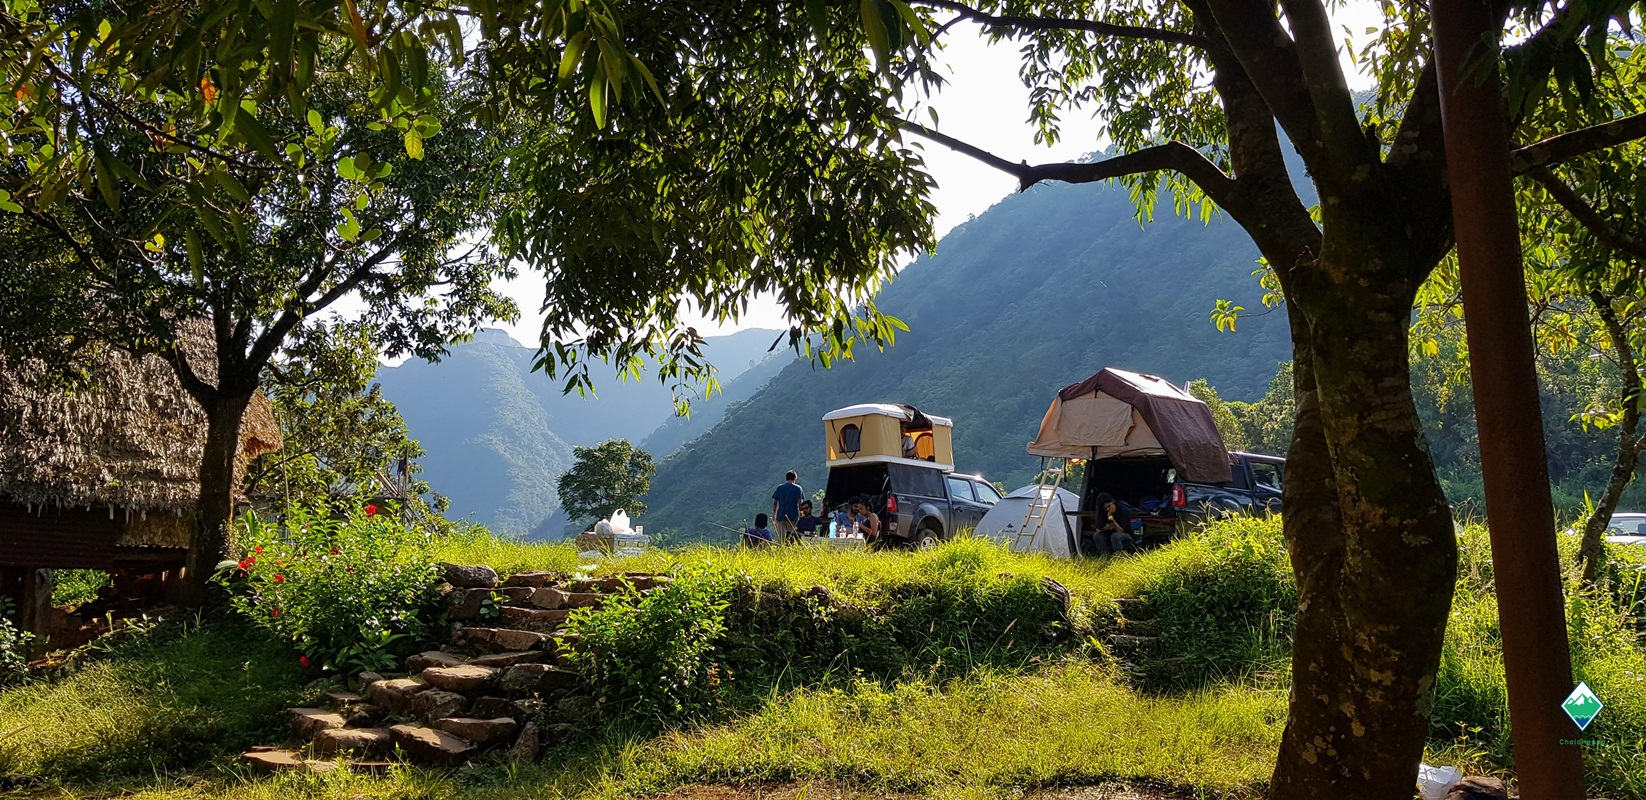 ChaloHoppo to camp in Wahkhen and conquer Mawryngkhang Image